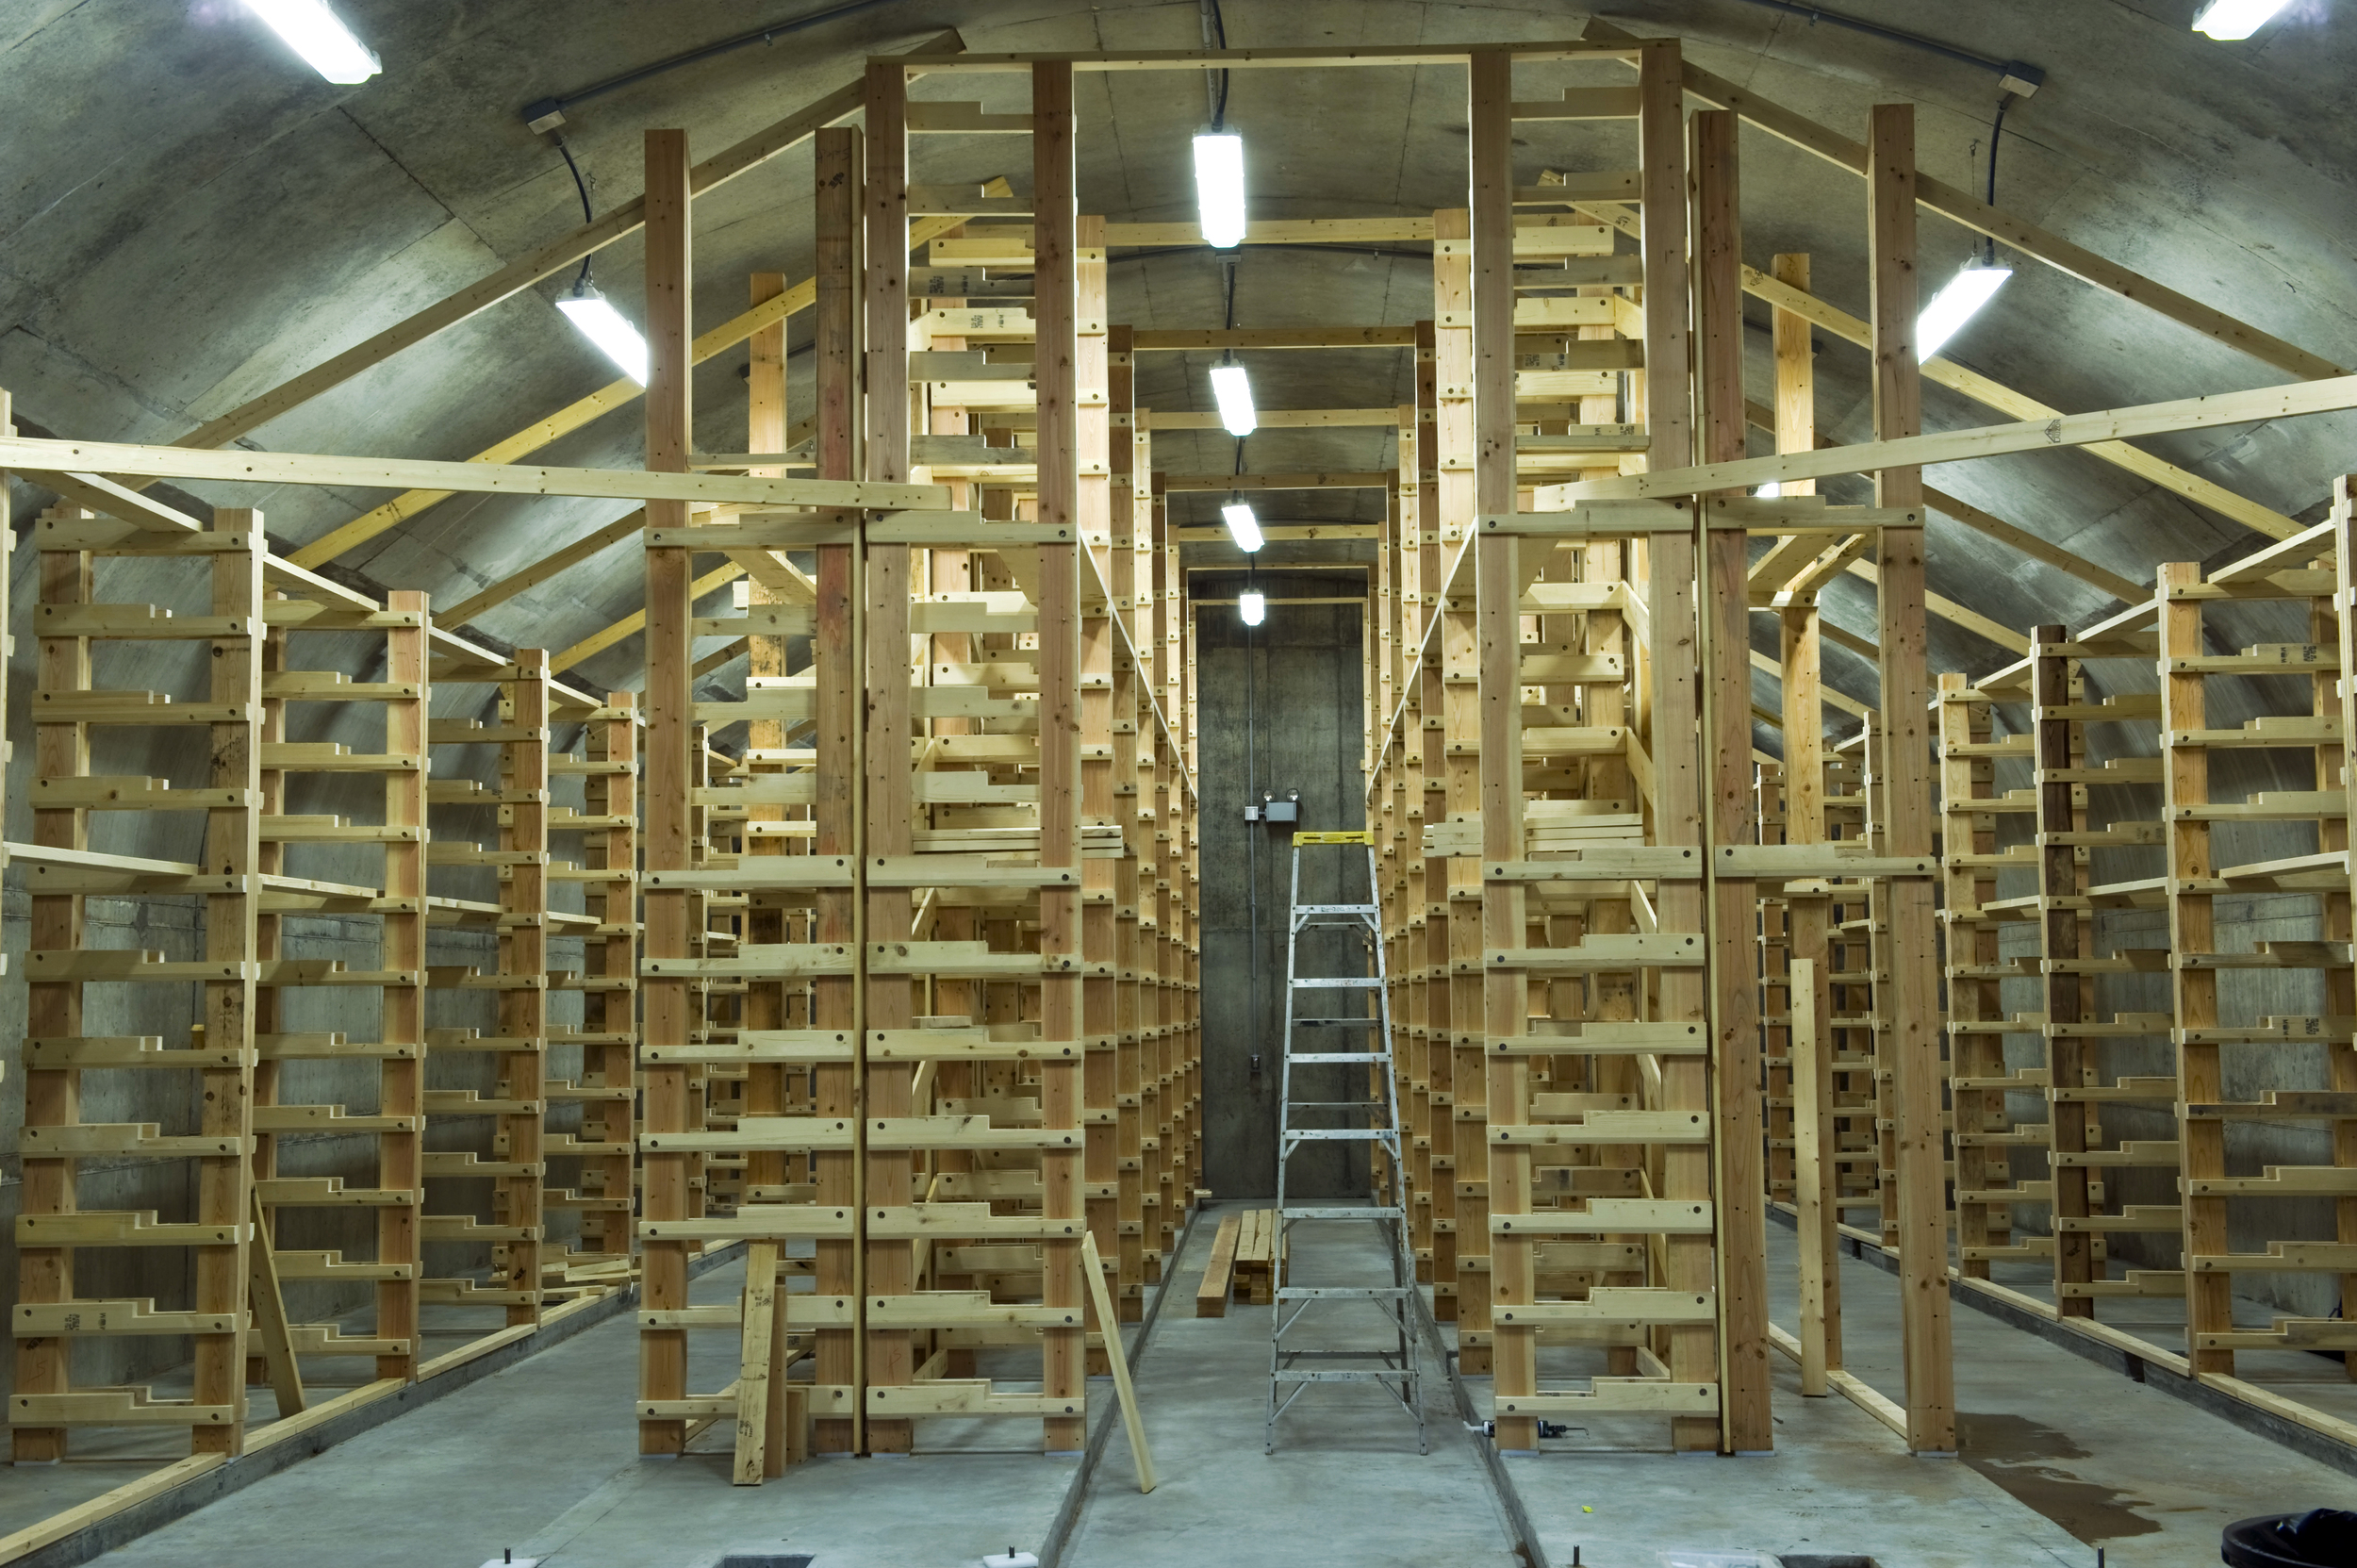 Wooden shelving in the cheddar vaults is designed to accomodate about 3000 aging 34 pound wheels.